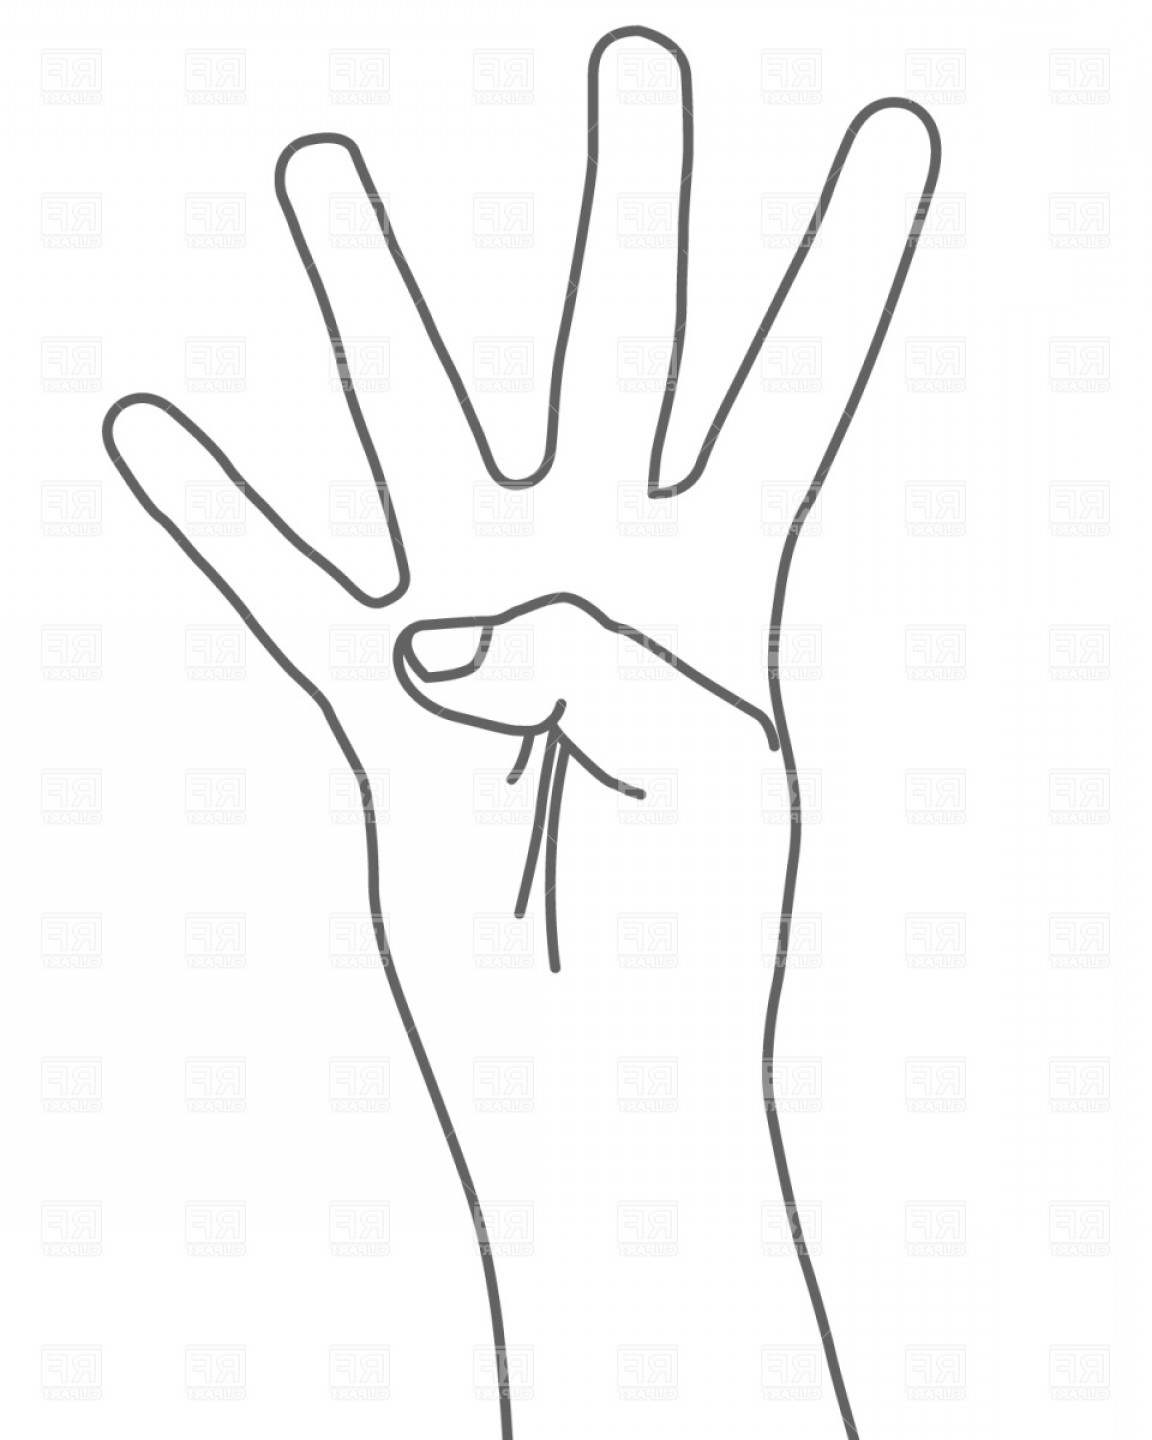 Hand Vector Clip Art: Four Fingers Hand Sign Vector Clipart